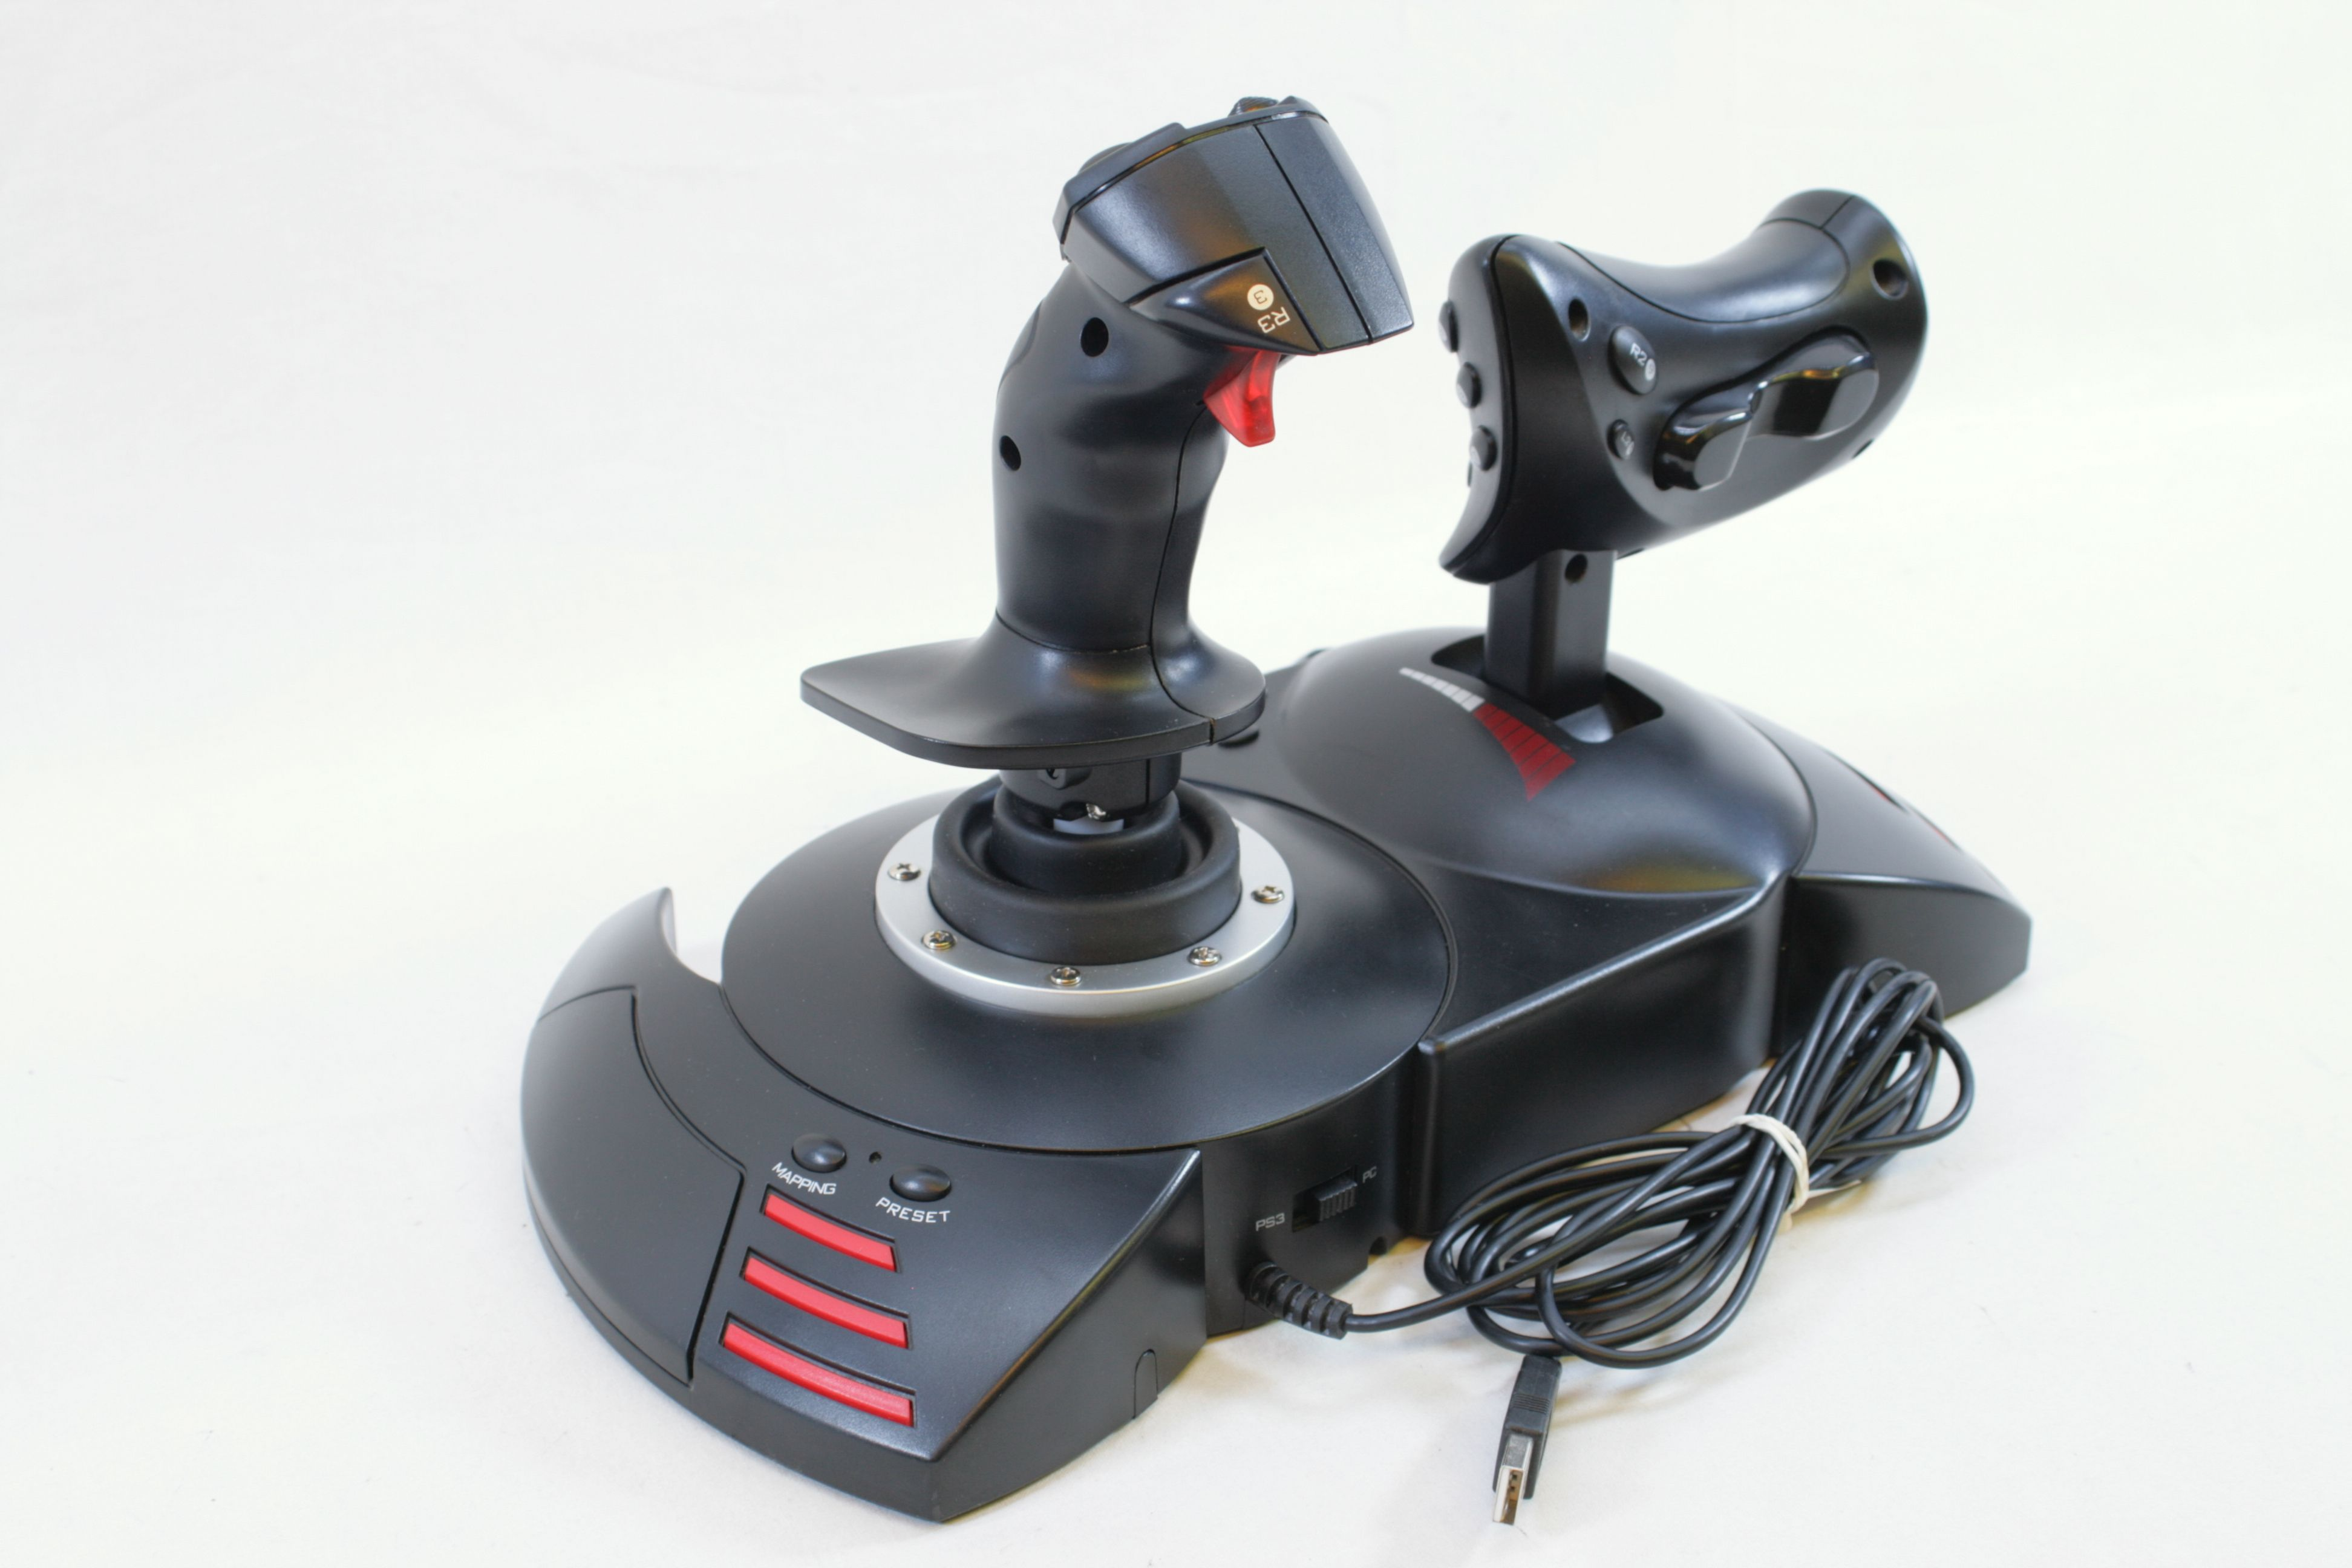 thrustmaster t flight hotas x joystick flight sim pc ps3 ebay. Black Bedroom Furniture Sets. Home Design Ideas